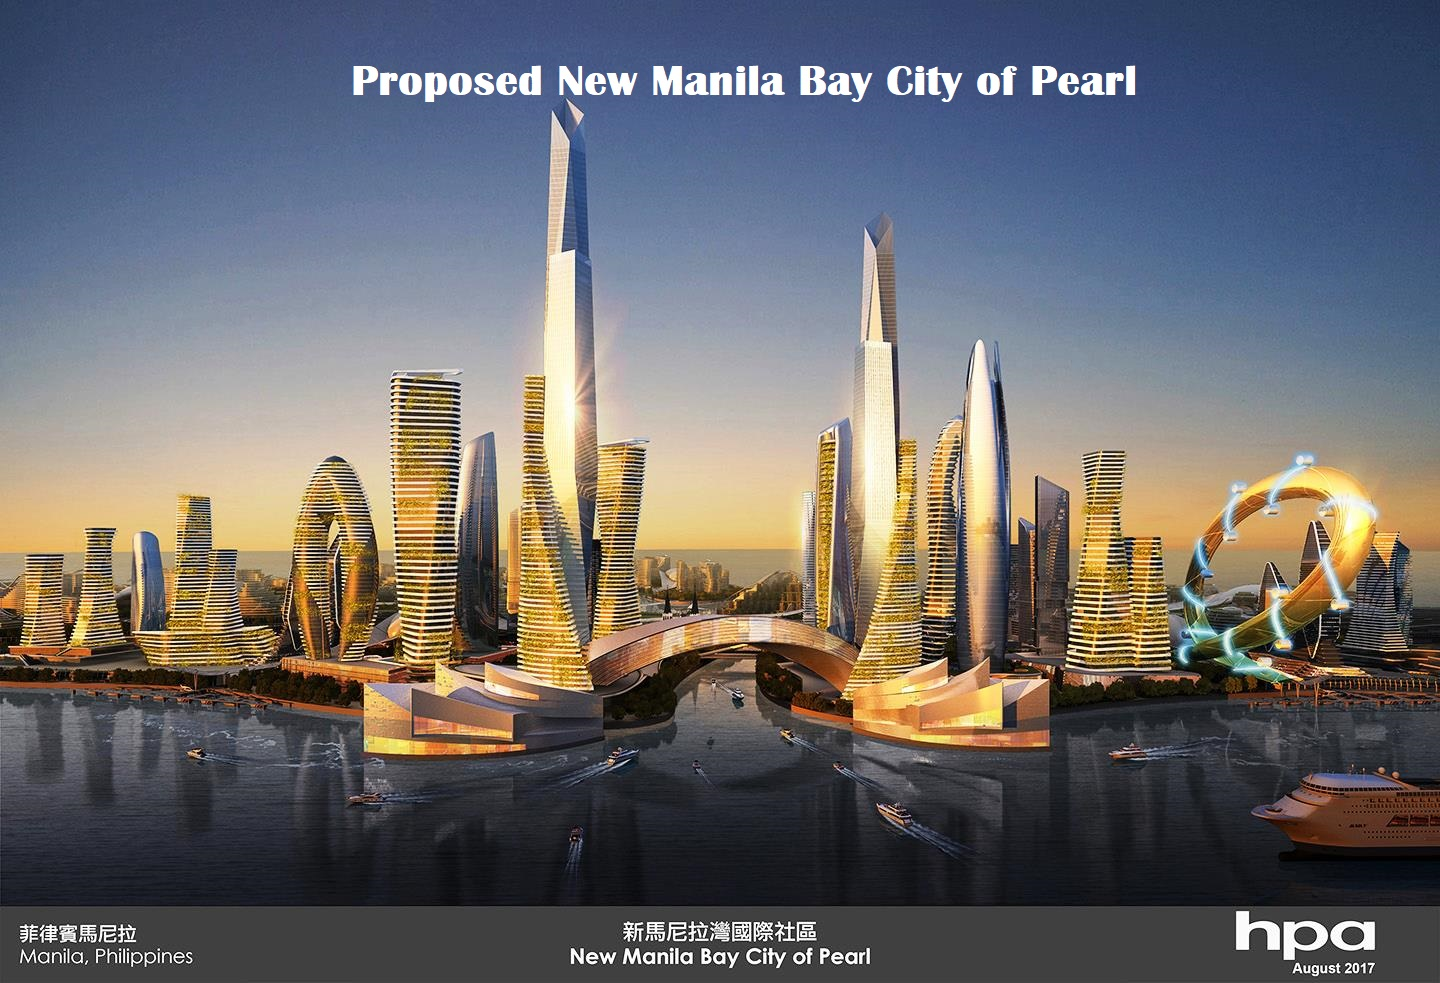 New Manila Bay City of Pearl, Philippines